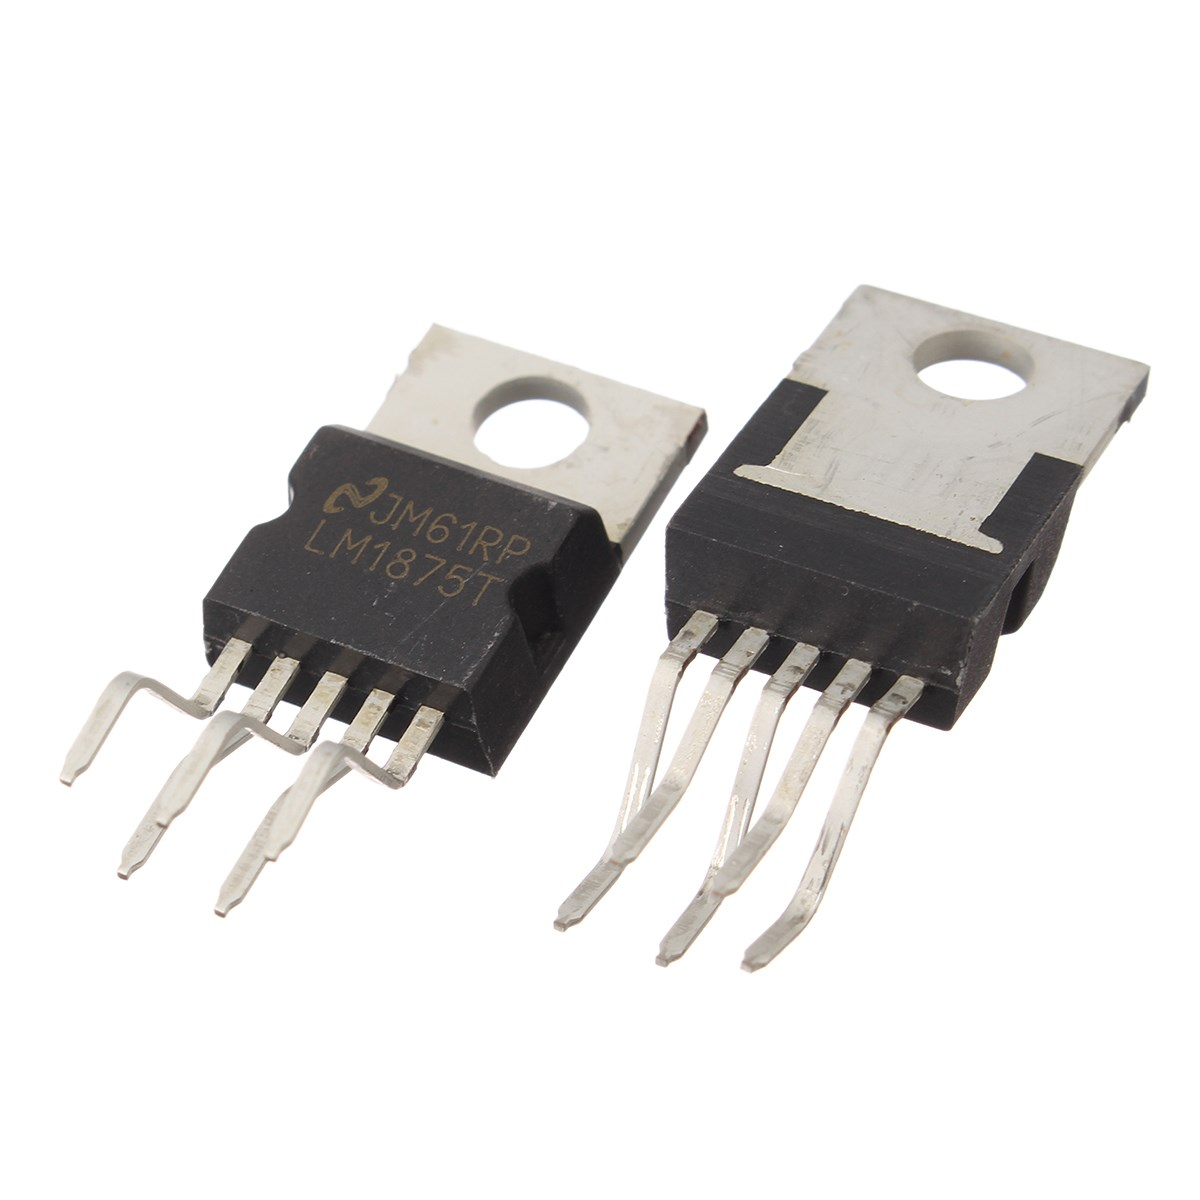 New Arrival Electronic 10pcs Lm1875t To220 5 Lm1875 20w Audio Amplifier Power Integrated Circuits In From Components